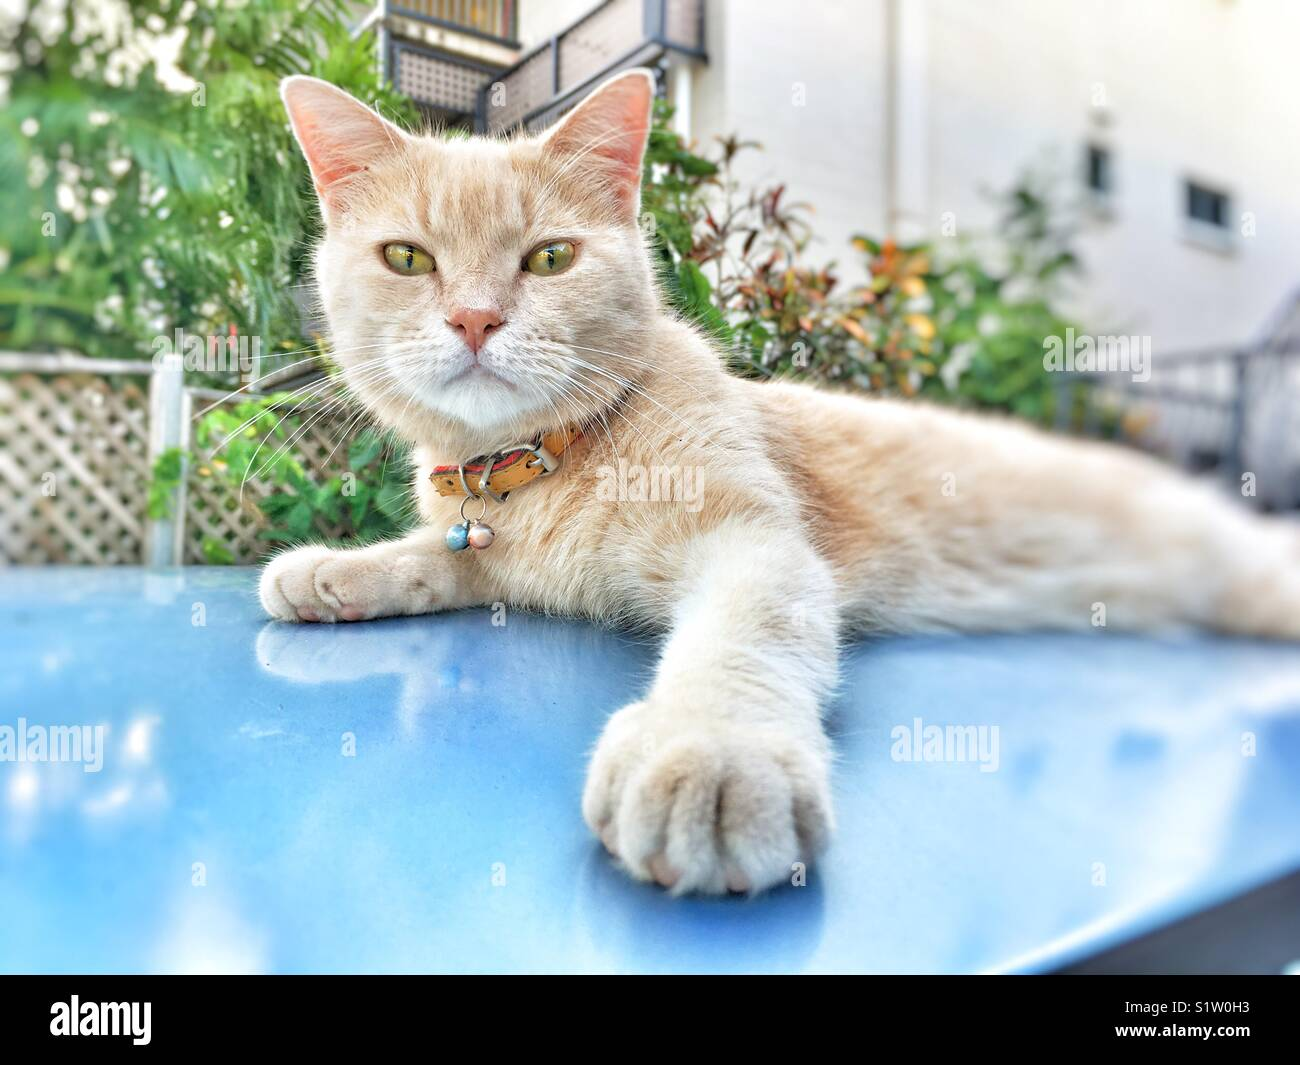 Cat lying on a car roof and looking at the camera. - Stock Image